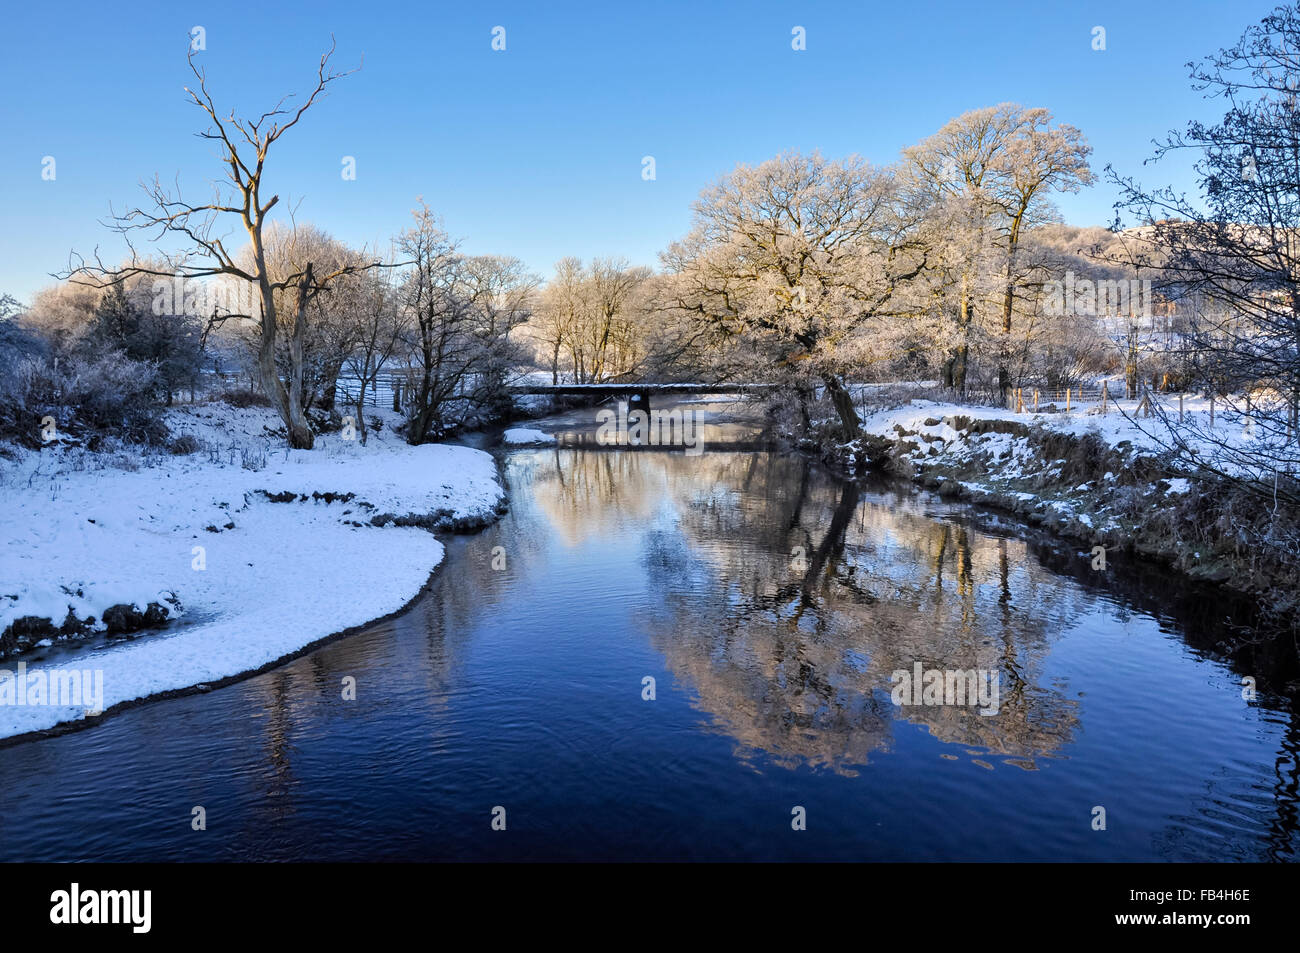 A chilly winter scene in the english countryside a blue for Desktop gratis inverno